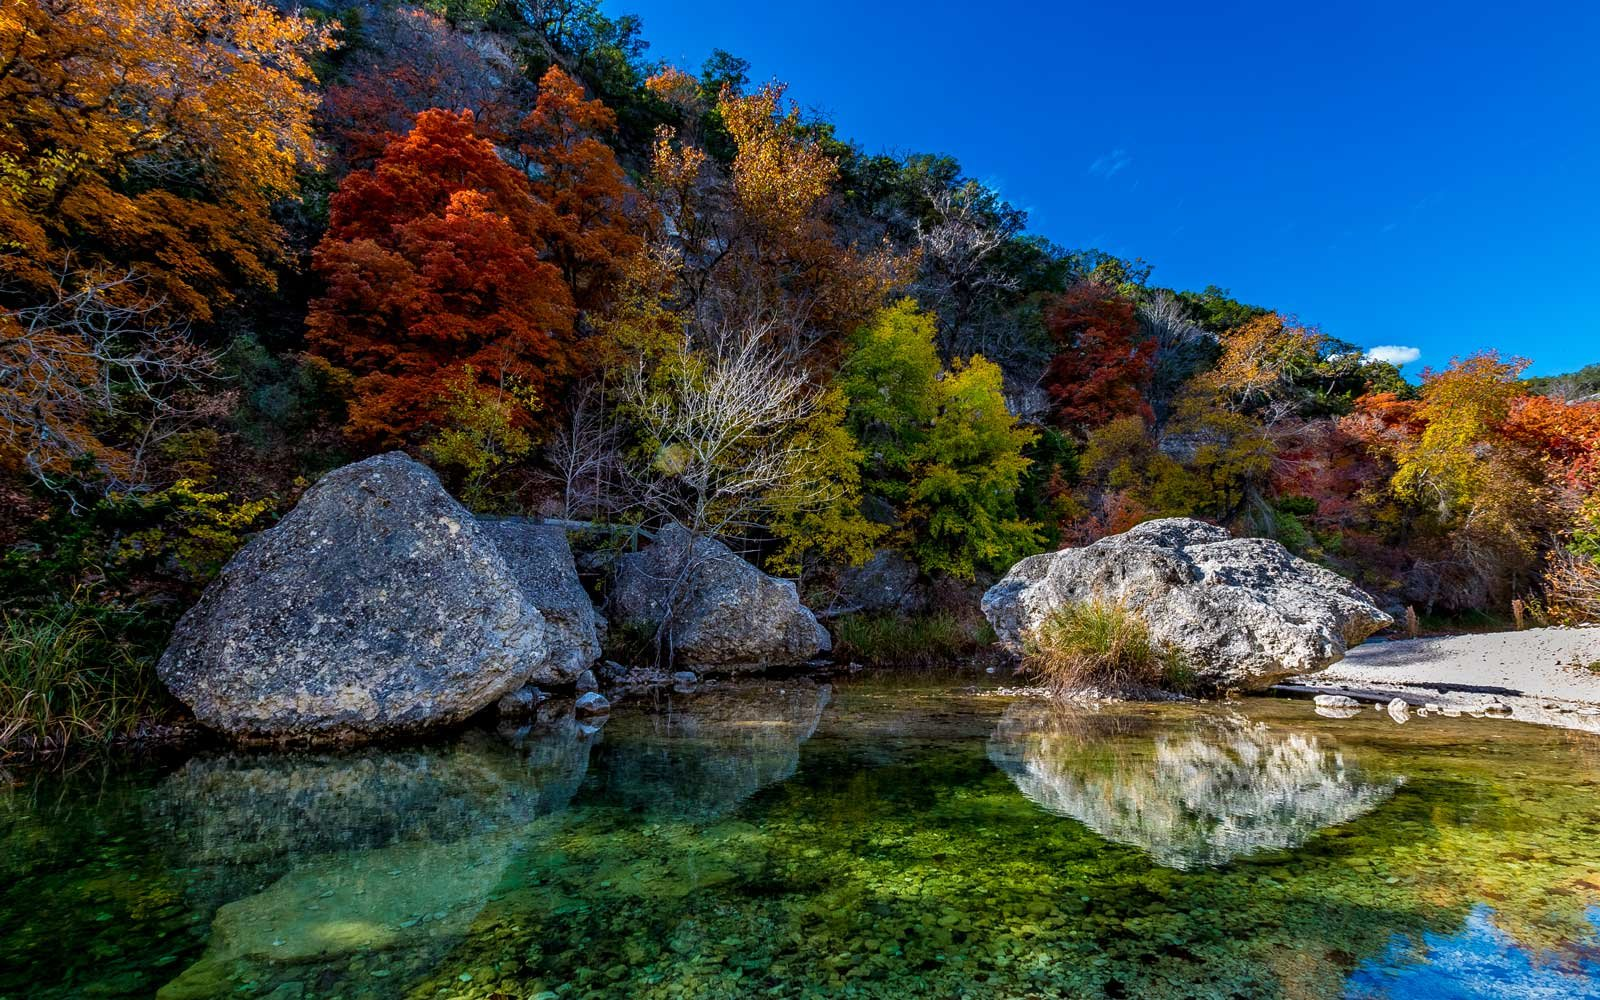 Amazing Fall Colors at Clear Pool in Lost Maples State Park, Texas